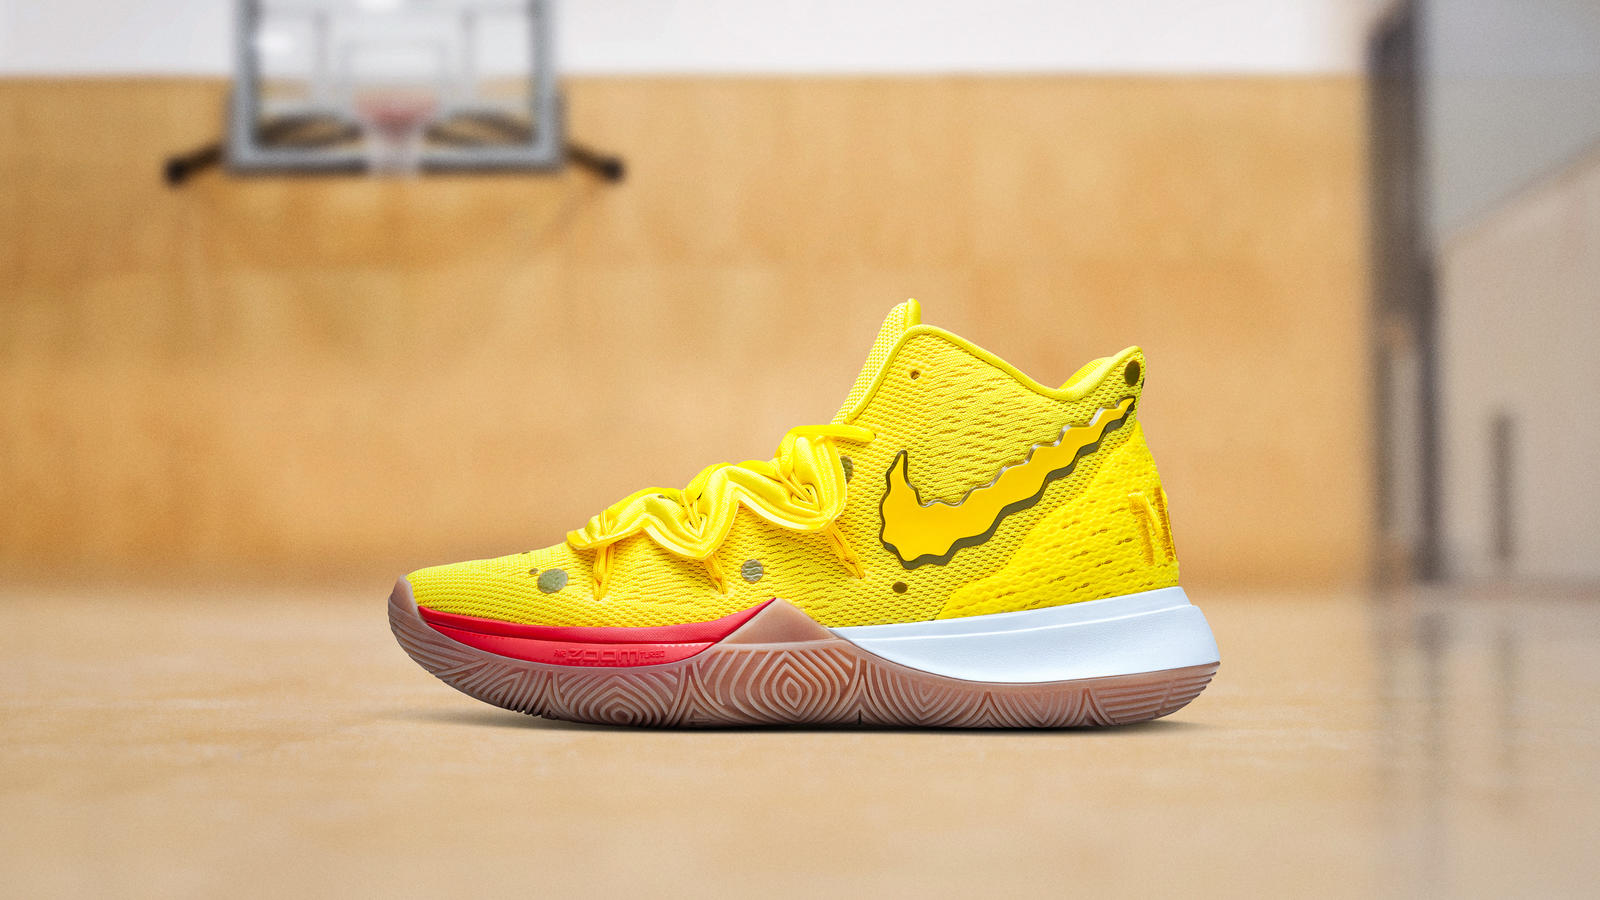 Nike Kyrie 5 x SpongeBob SquarePants Collection 9